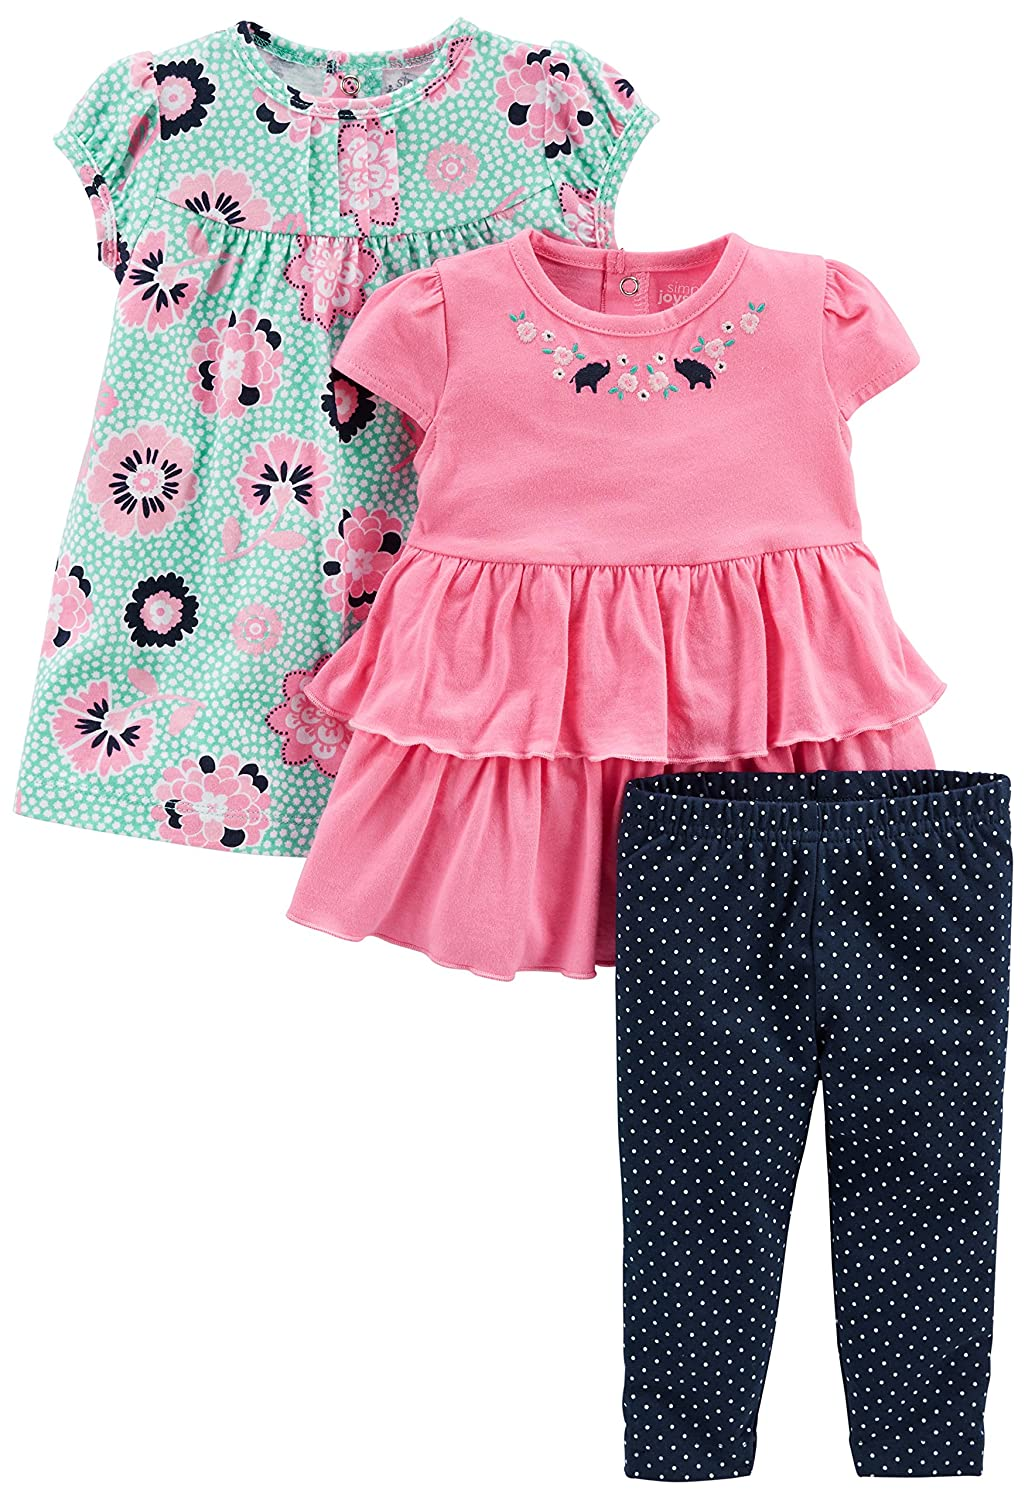 and Pants Playwear Set Simple Joys by Carters Baby Girls 3-Piece Short-Sleeve Top Dress